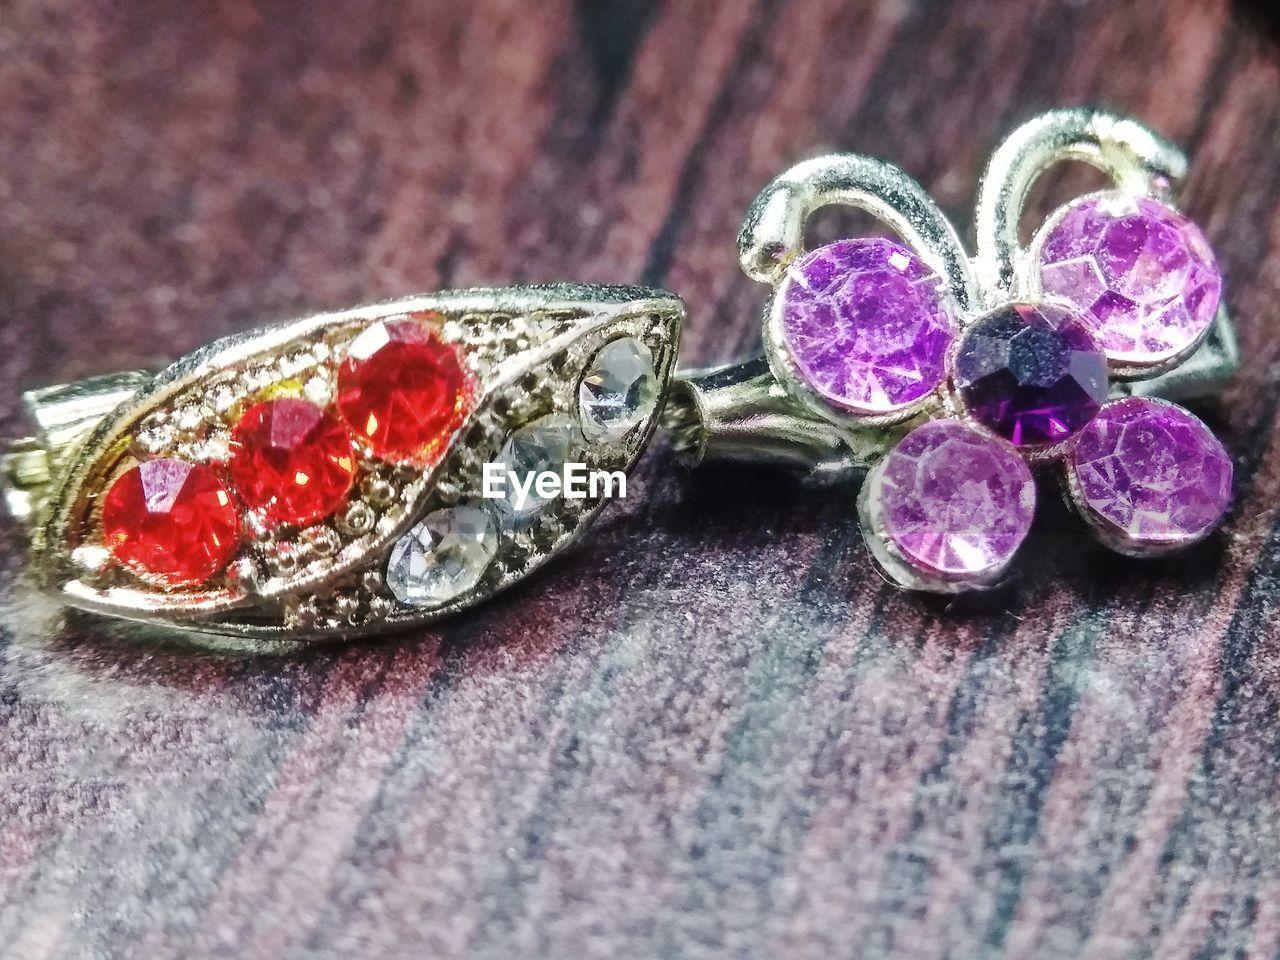 jewelry, wealth, luxury, gemstone, close-up, diamond - gemstone, no people, still life, table, indoors, ring, selective focus, precious gem, shiny, fashion, solid, metal, variation, group of objects, personal accessory, purple, silver colored, ornate, expense